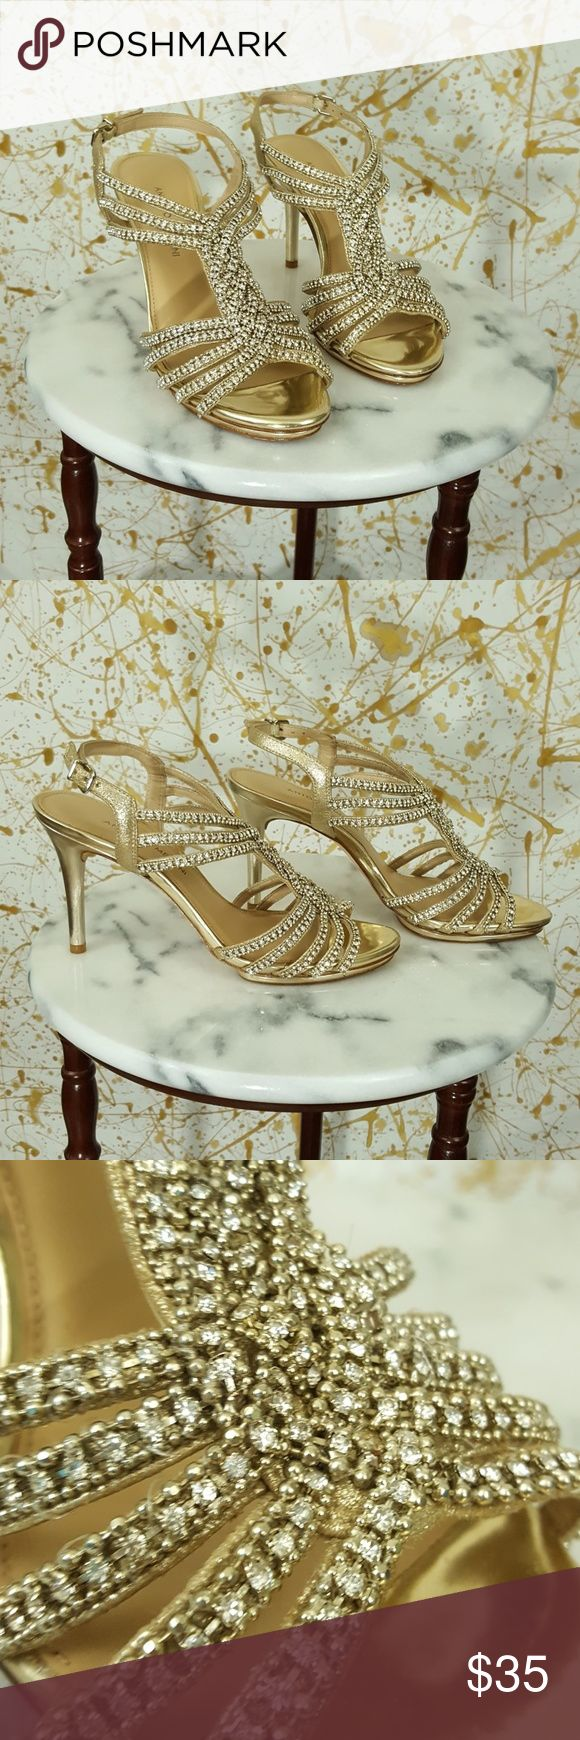 """Antonio Melani Gold Jeweled Open toe Heels 9.5 Hey gorgeous, thank you for checking out my closet. This is a pair of Antonio Melani Gold Jeweled Open toe Heels size 9.5. There is wear and water marks on the bottom of the shoes. There are small Knicks on the heels. The strap is adjustable and the heels are approximately 4"""". All the embellishments are intact. Please feel free to ask any questions. ANTONIO MELANI Shoes Heels"""